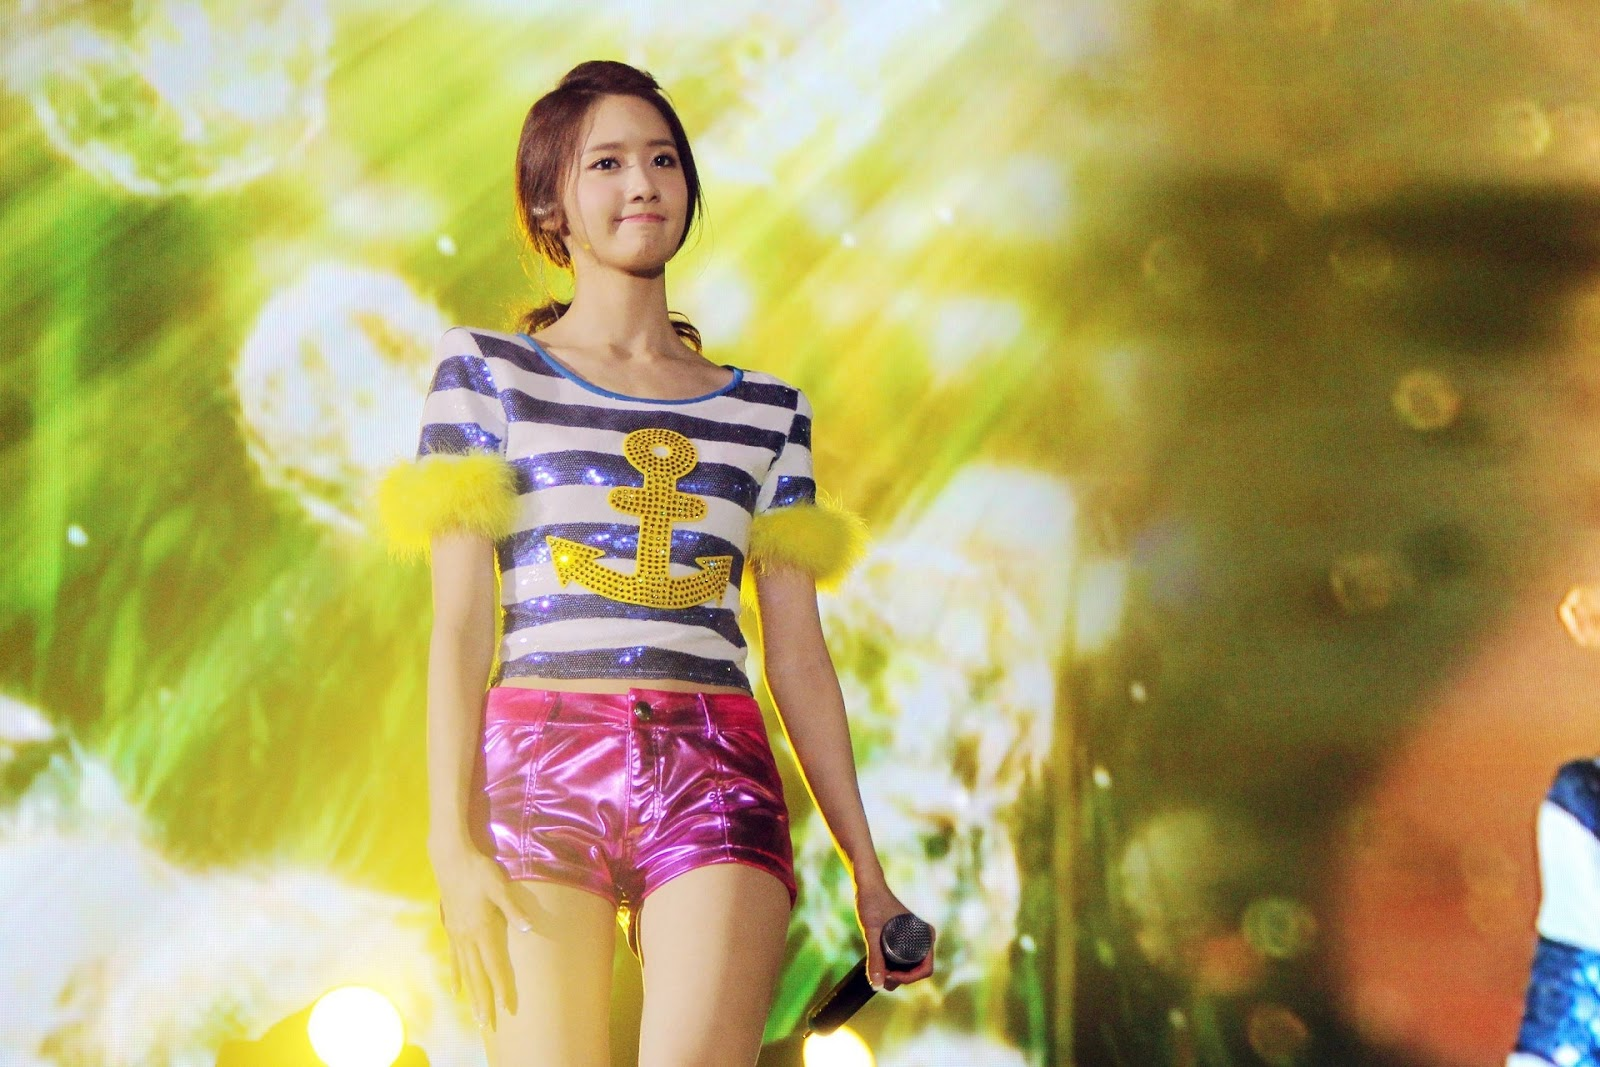 wallpaper hd 10 snsd yoona wallpaper hd 11 1600x1067